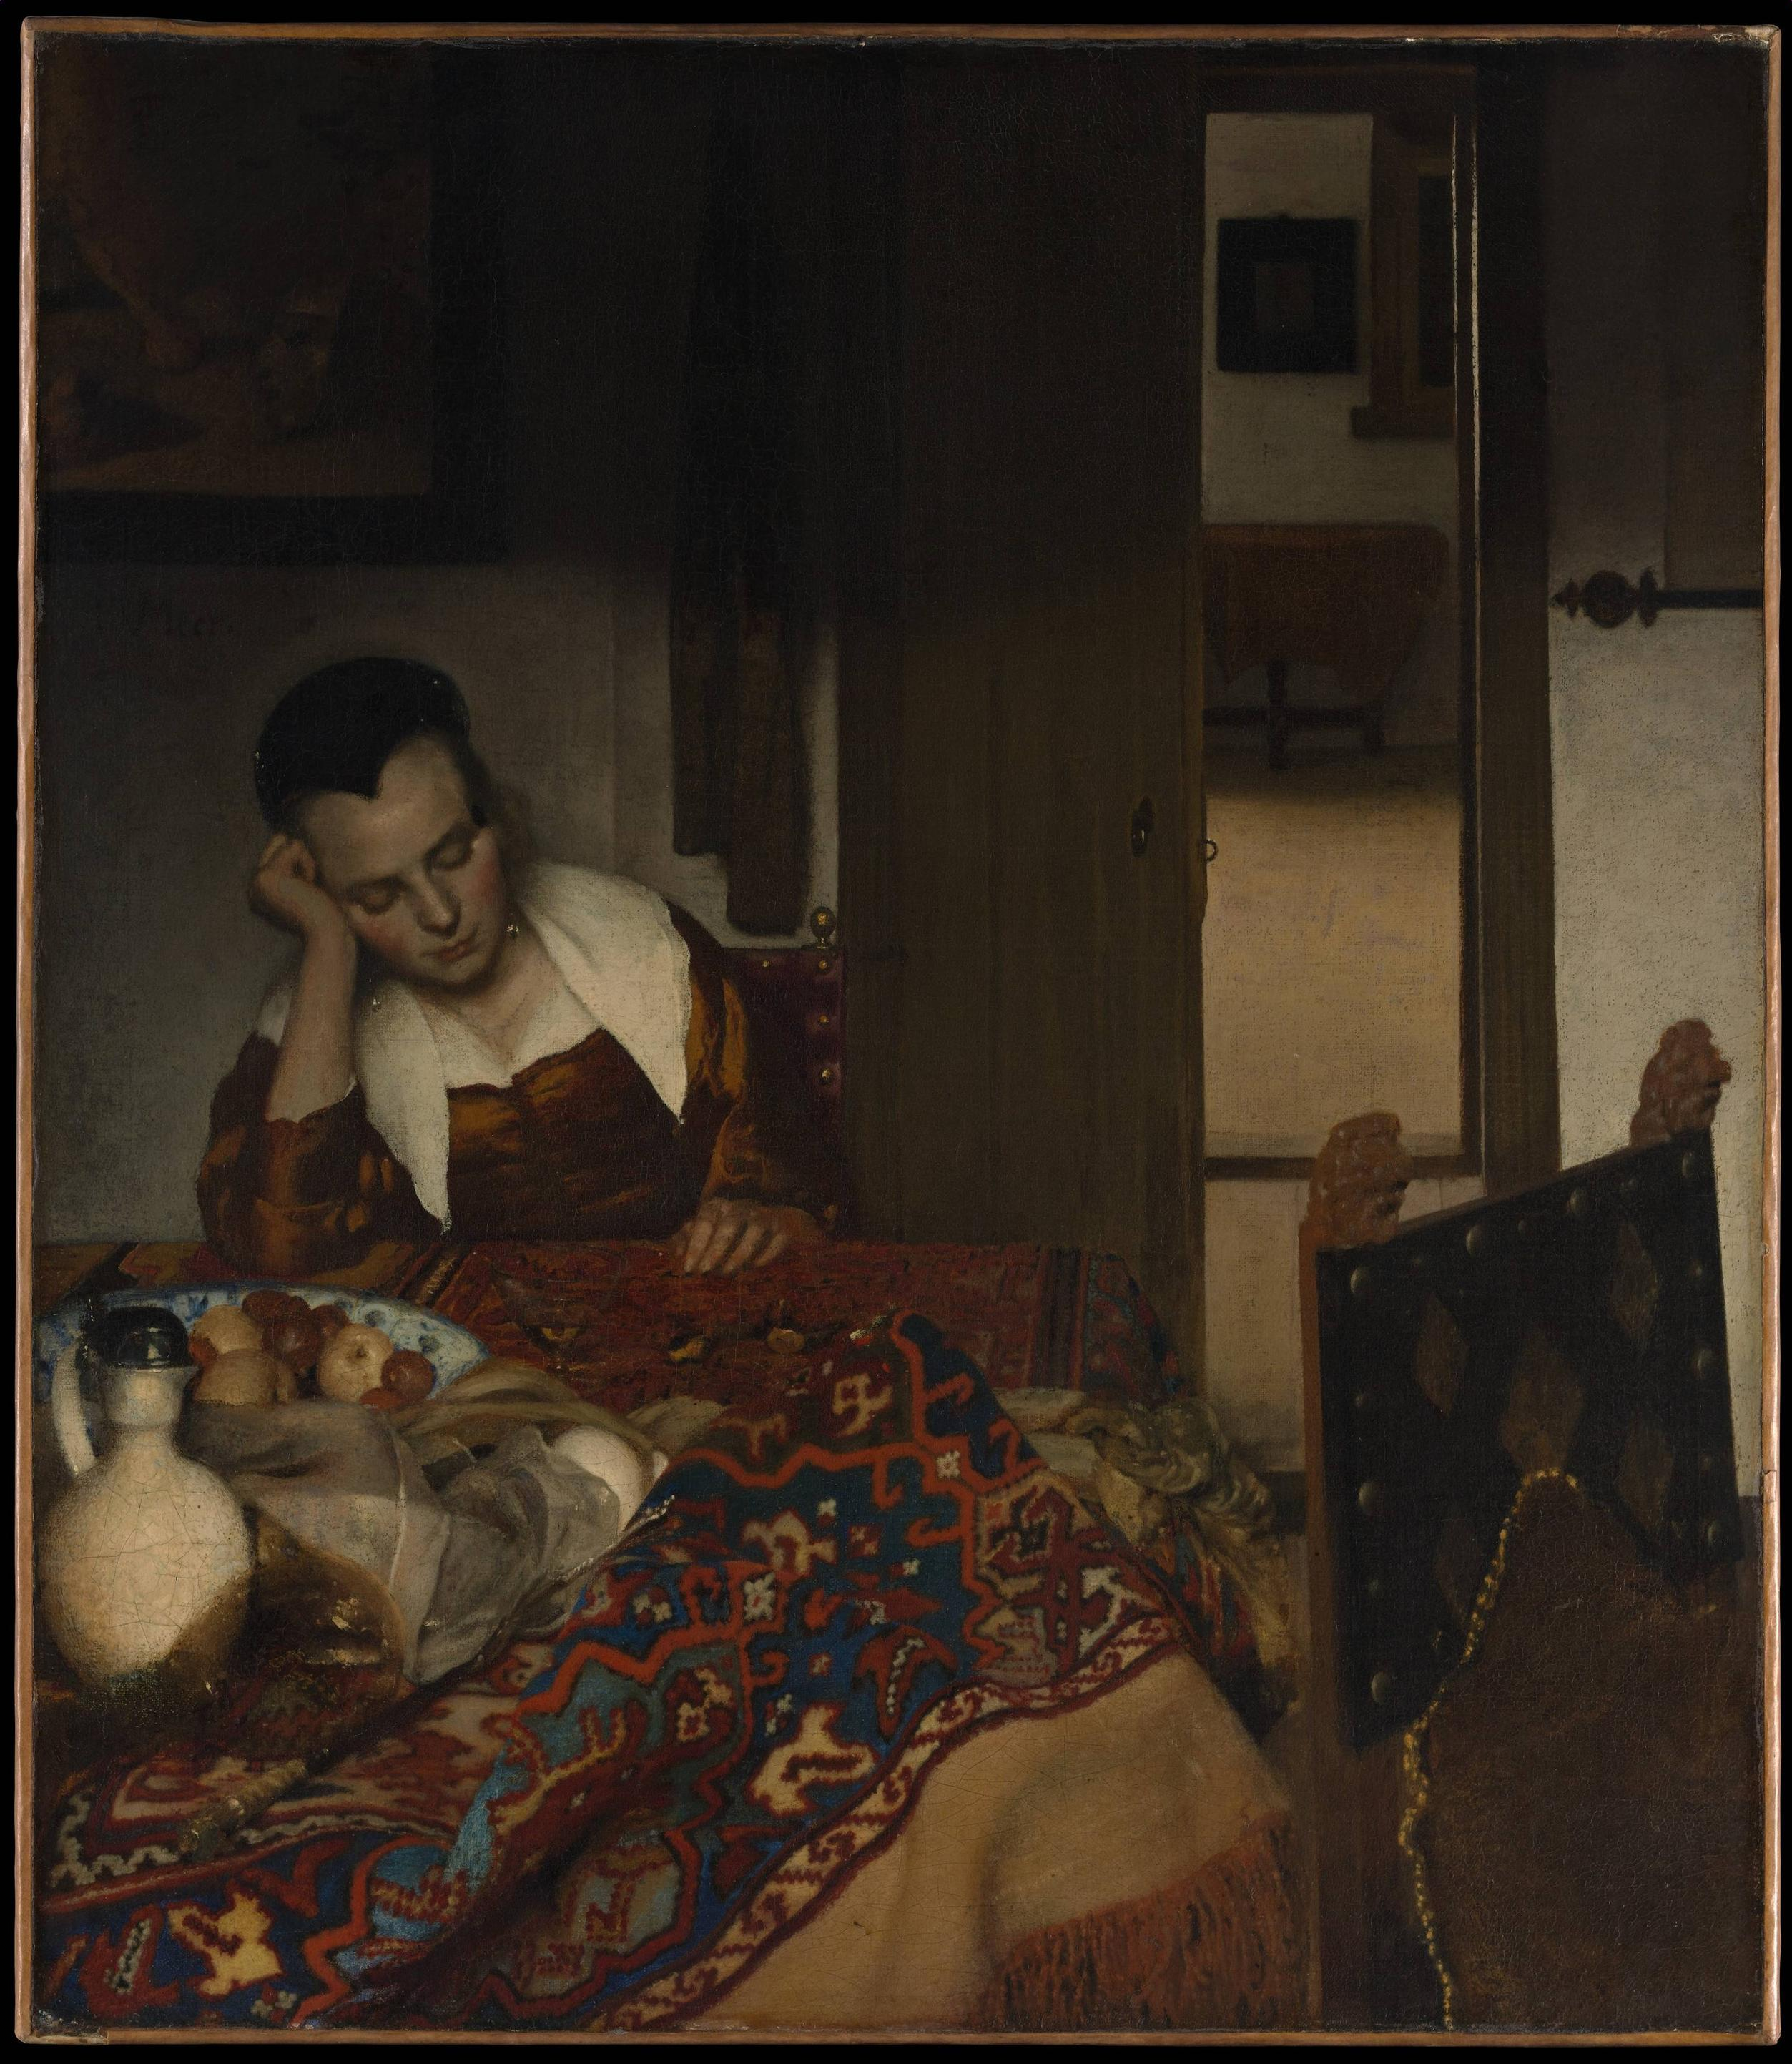 Vermeer, A maid asleep (1656-57)